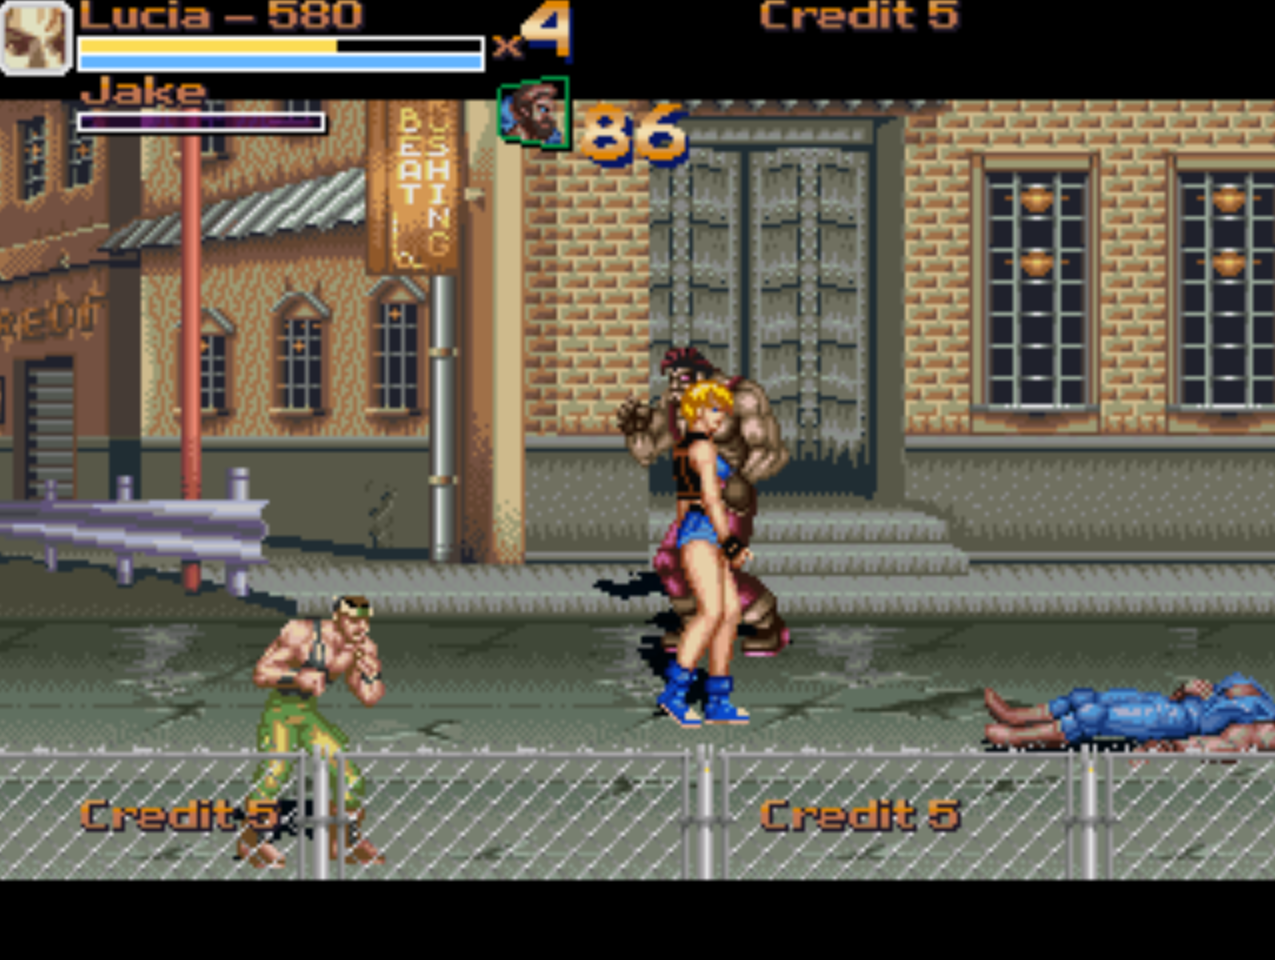 Hyper-Final-Fight-3-speedallonlinegamessiteshere-free-fan-video-game-openbor-pc-systems-enter-download-link